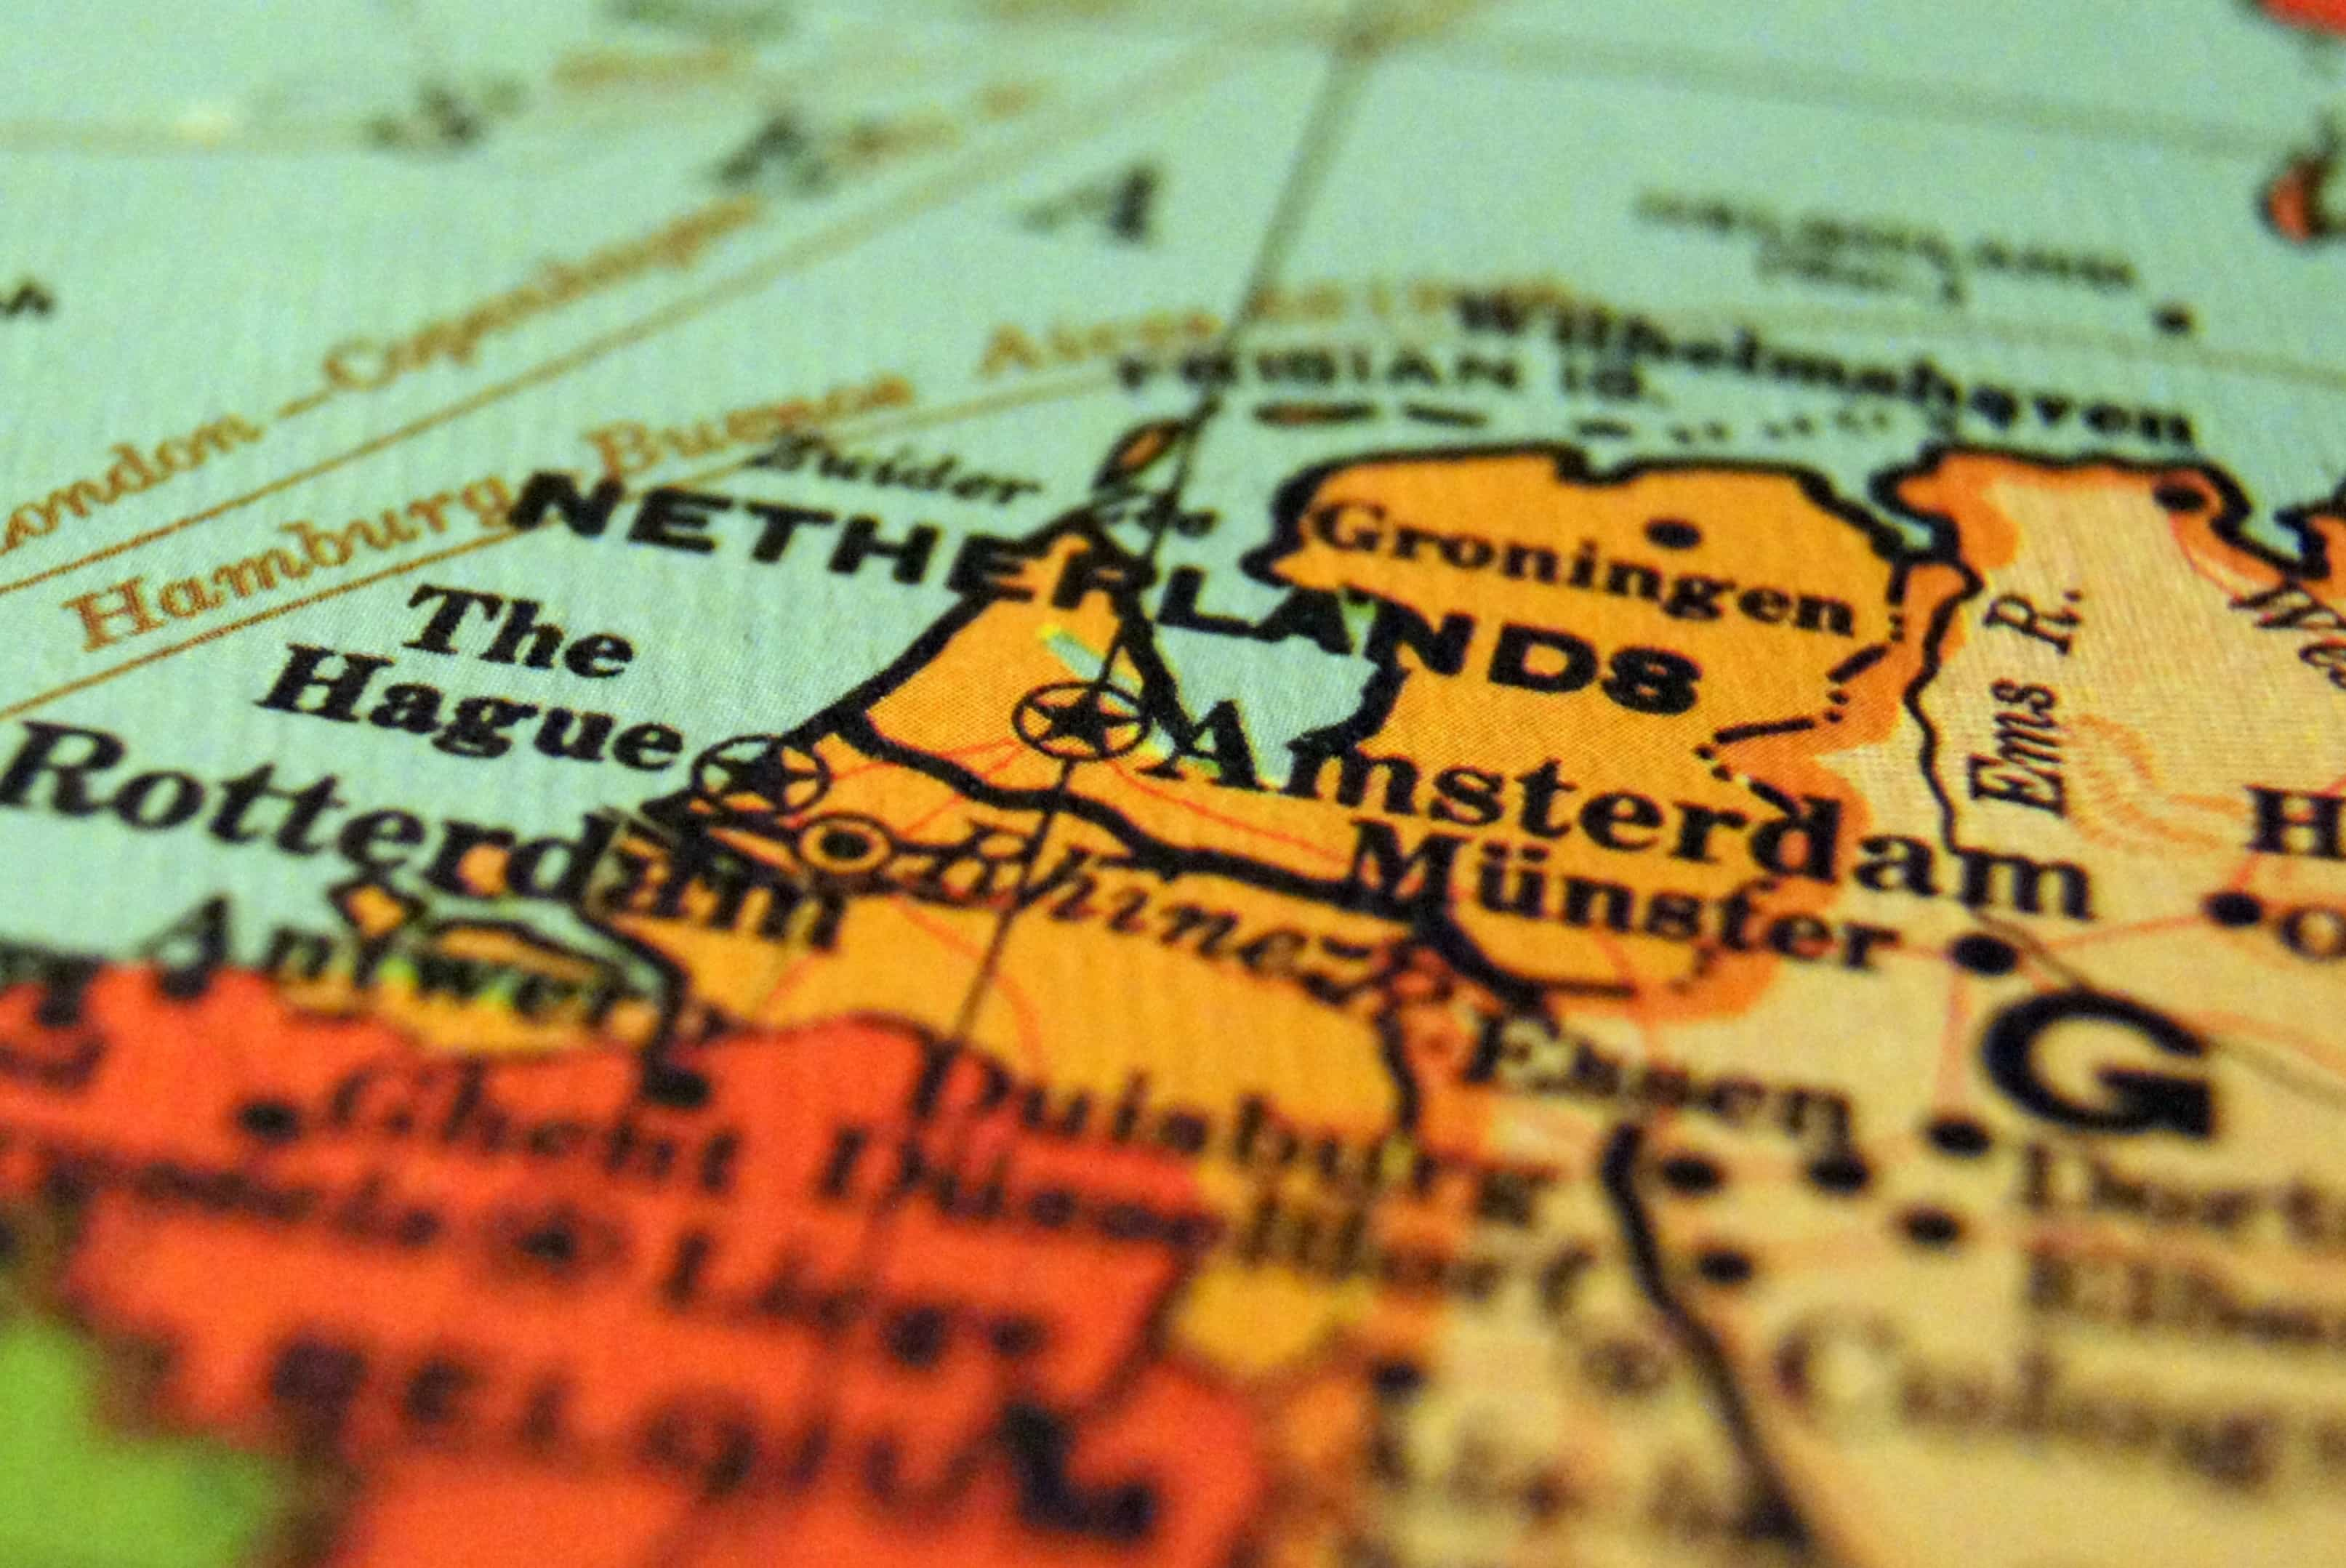 Aiesec Münster what to expect when coming to study in the netherlands